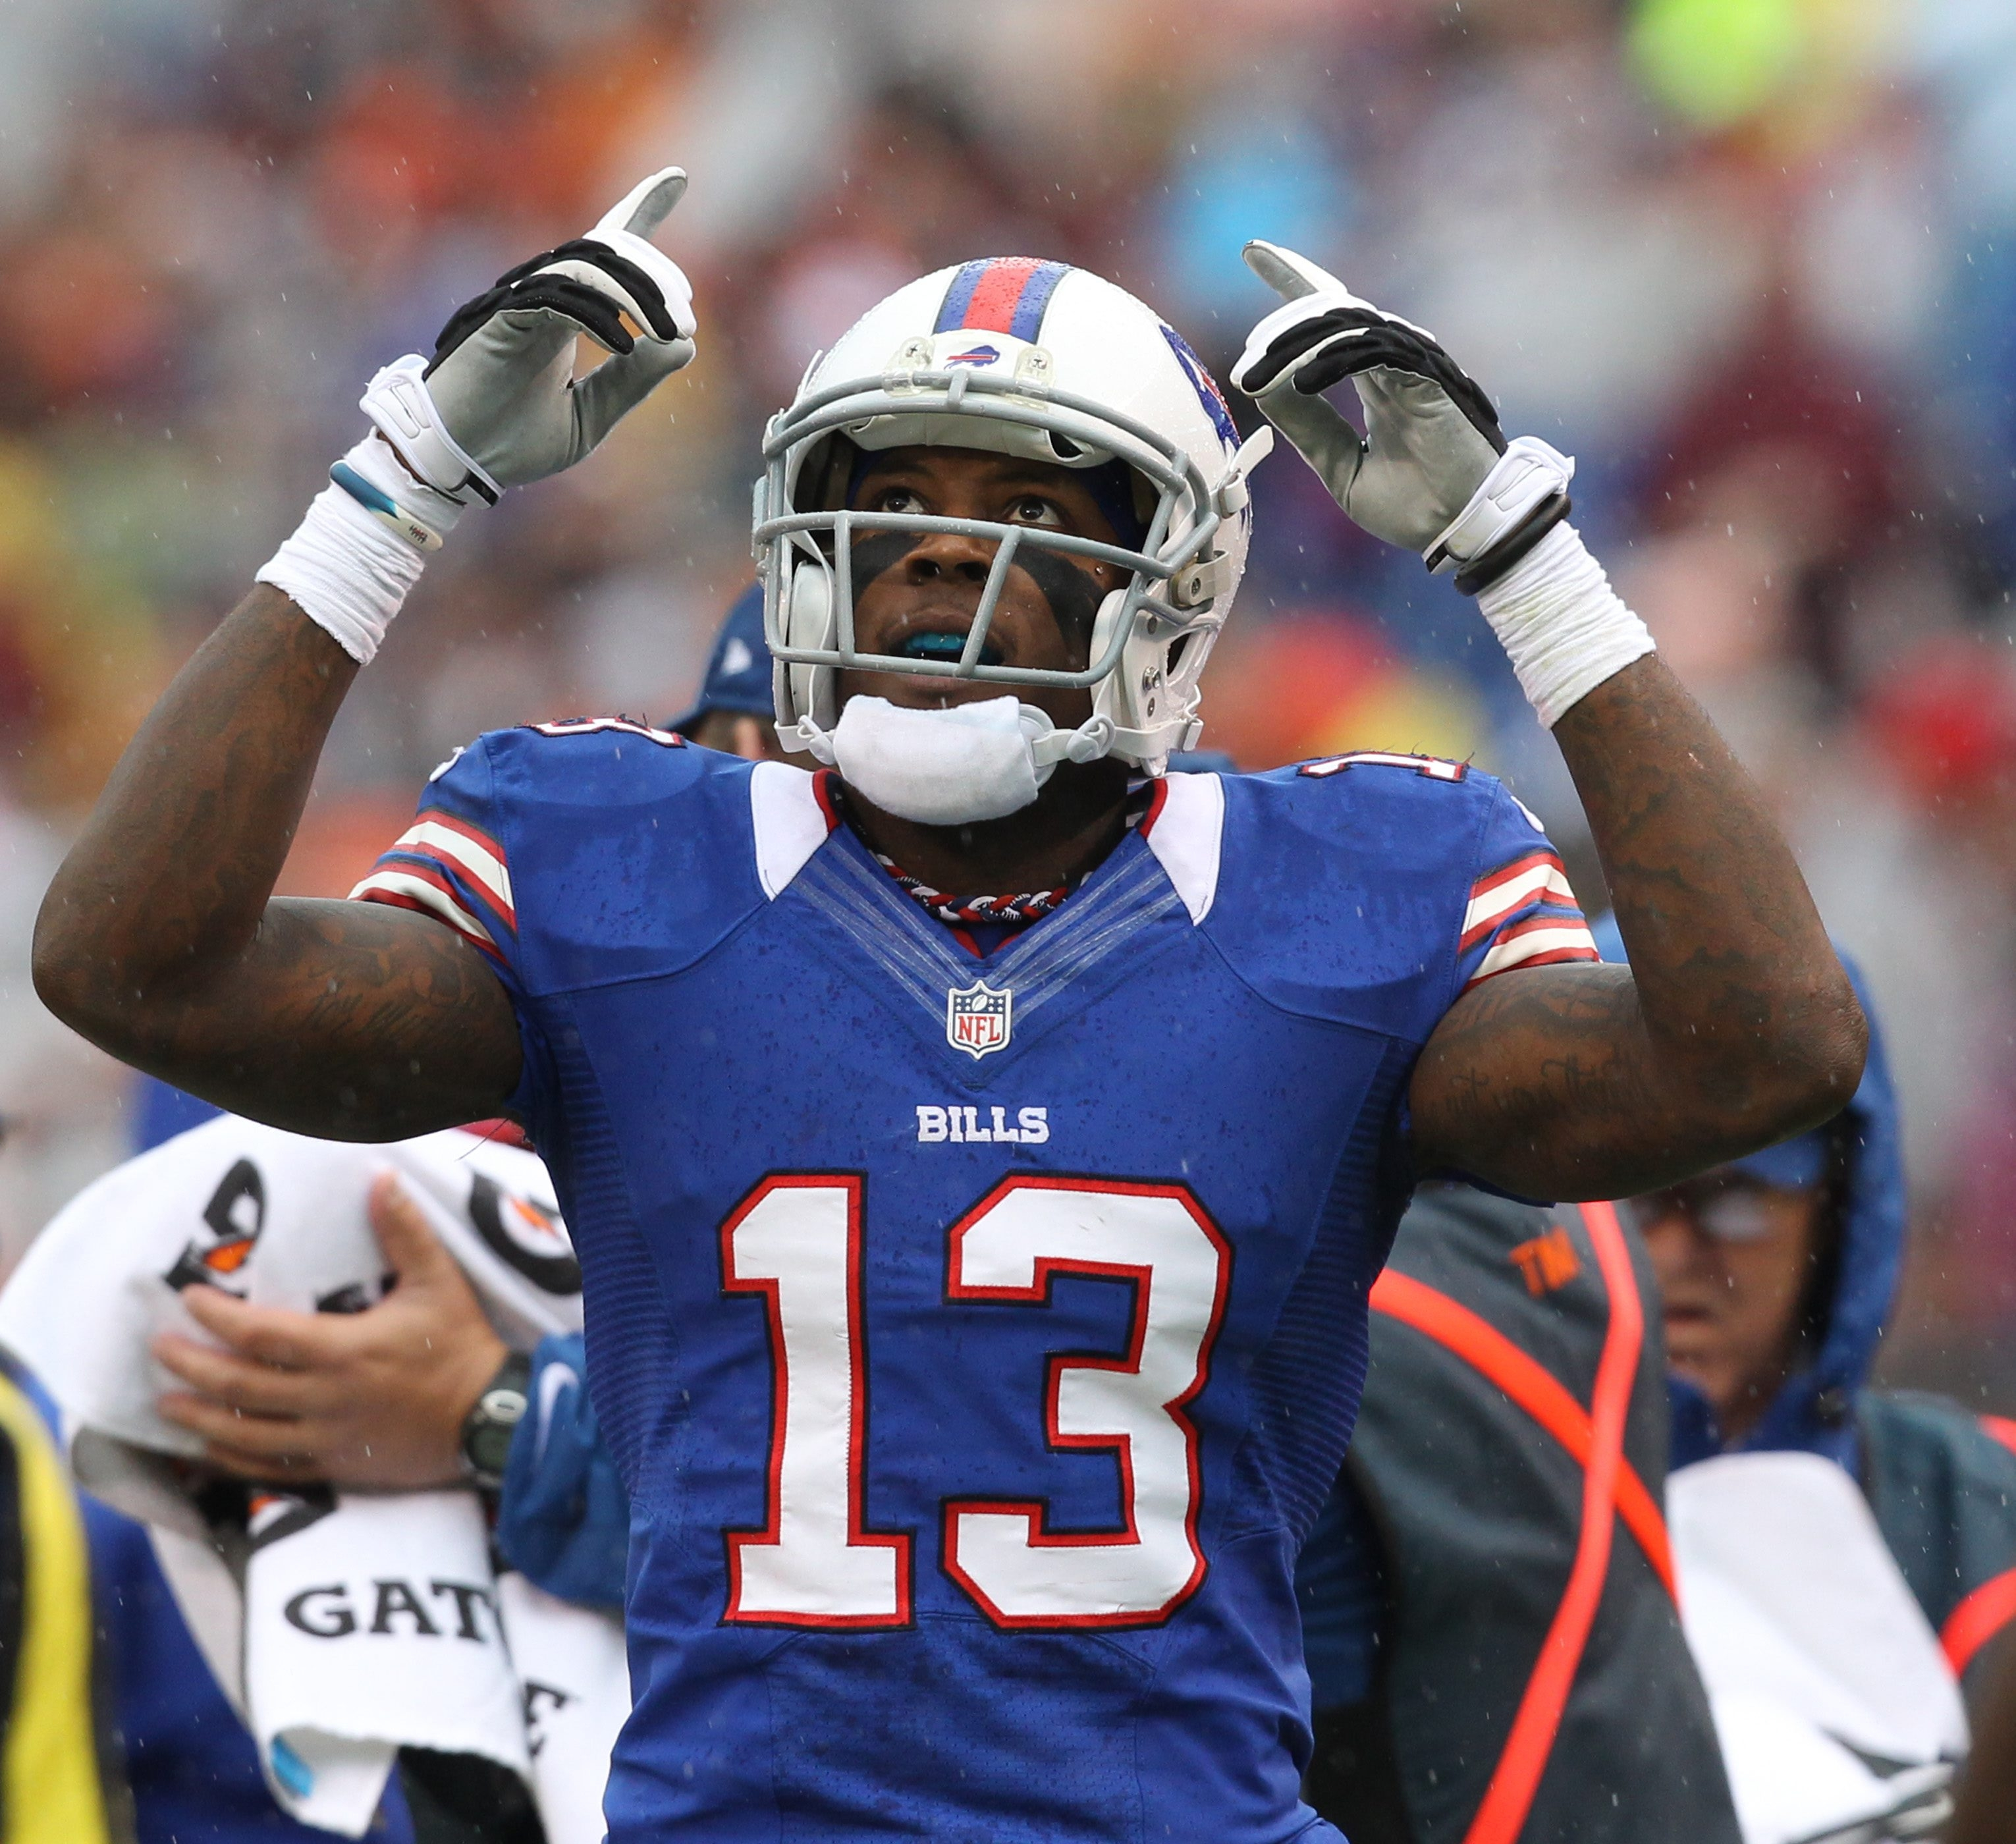 Stevie Johnson has not had a 100-yard receiving game since Dec. 11, 2011.